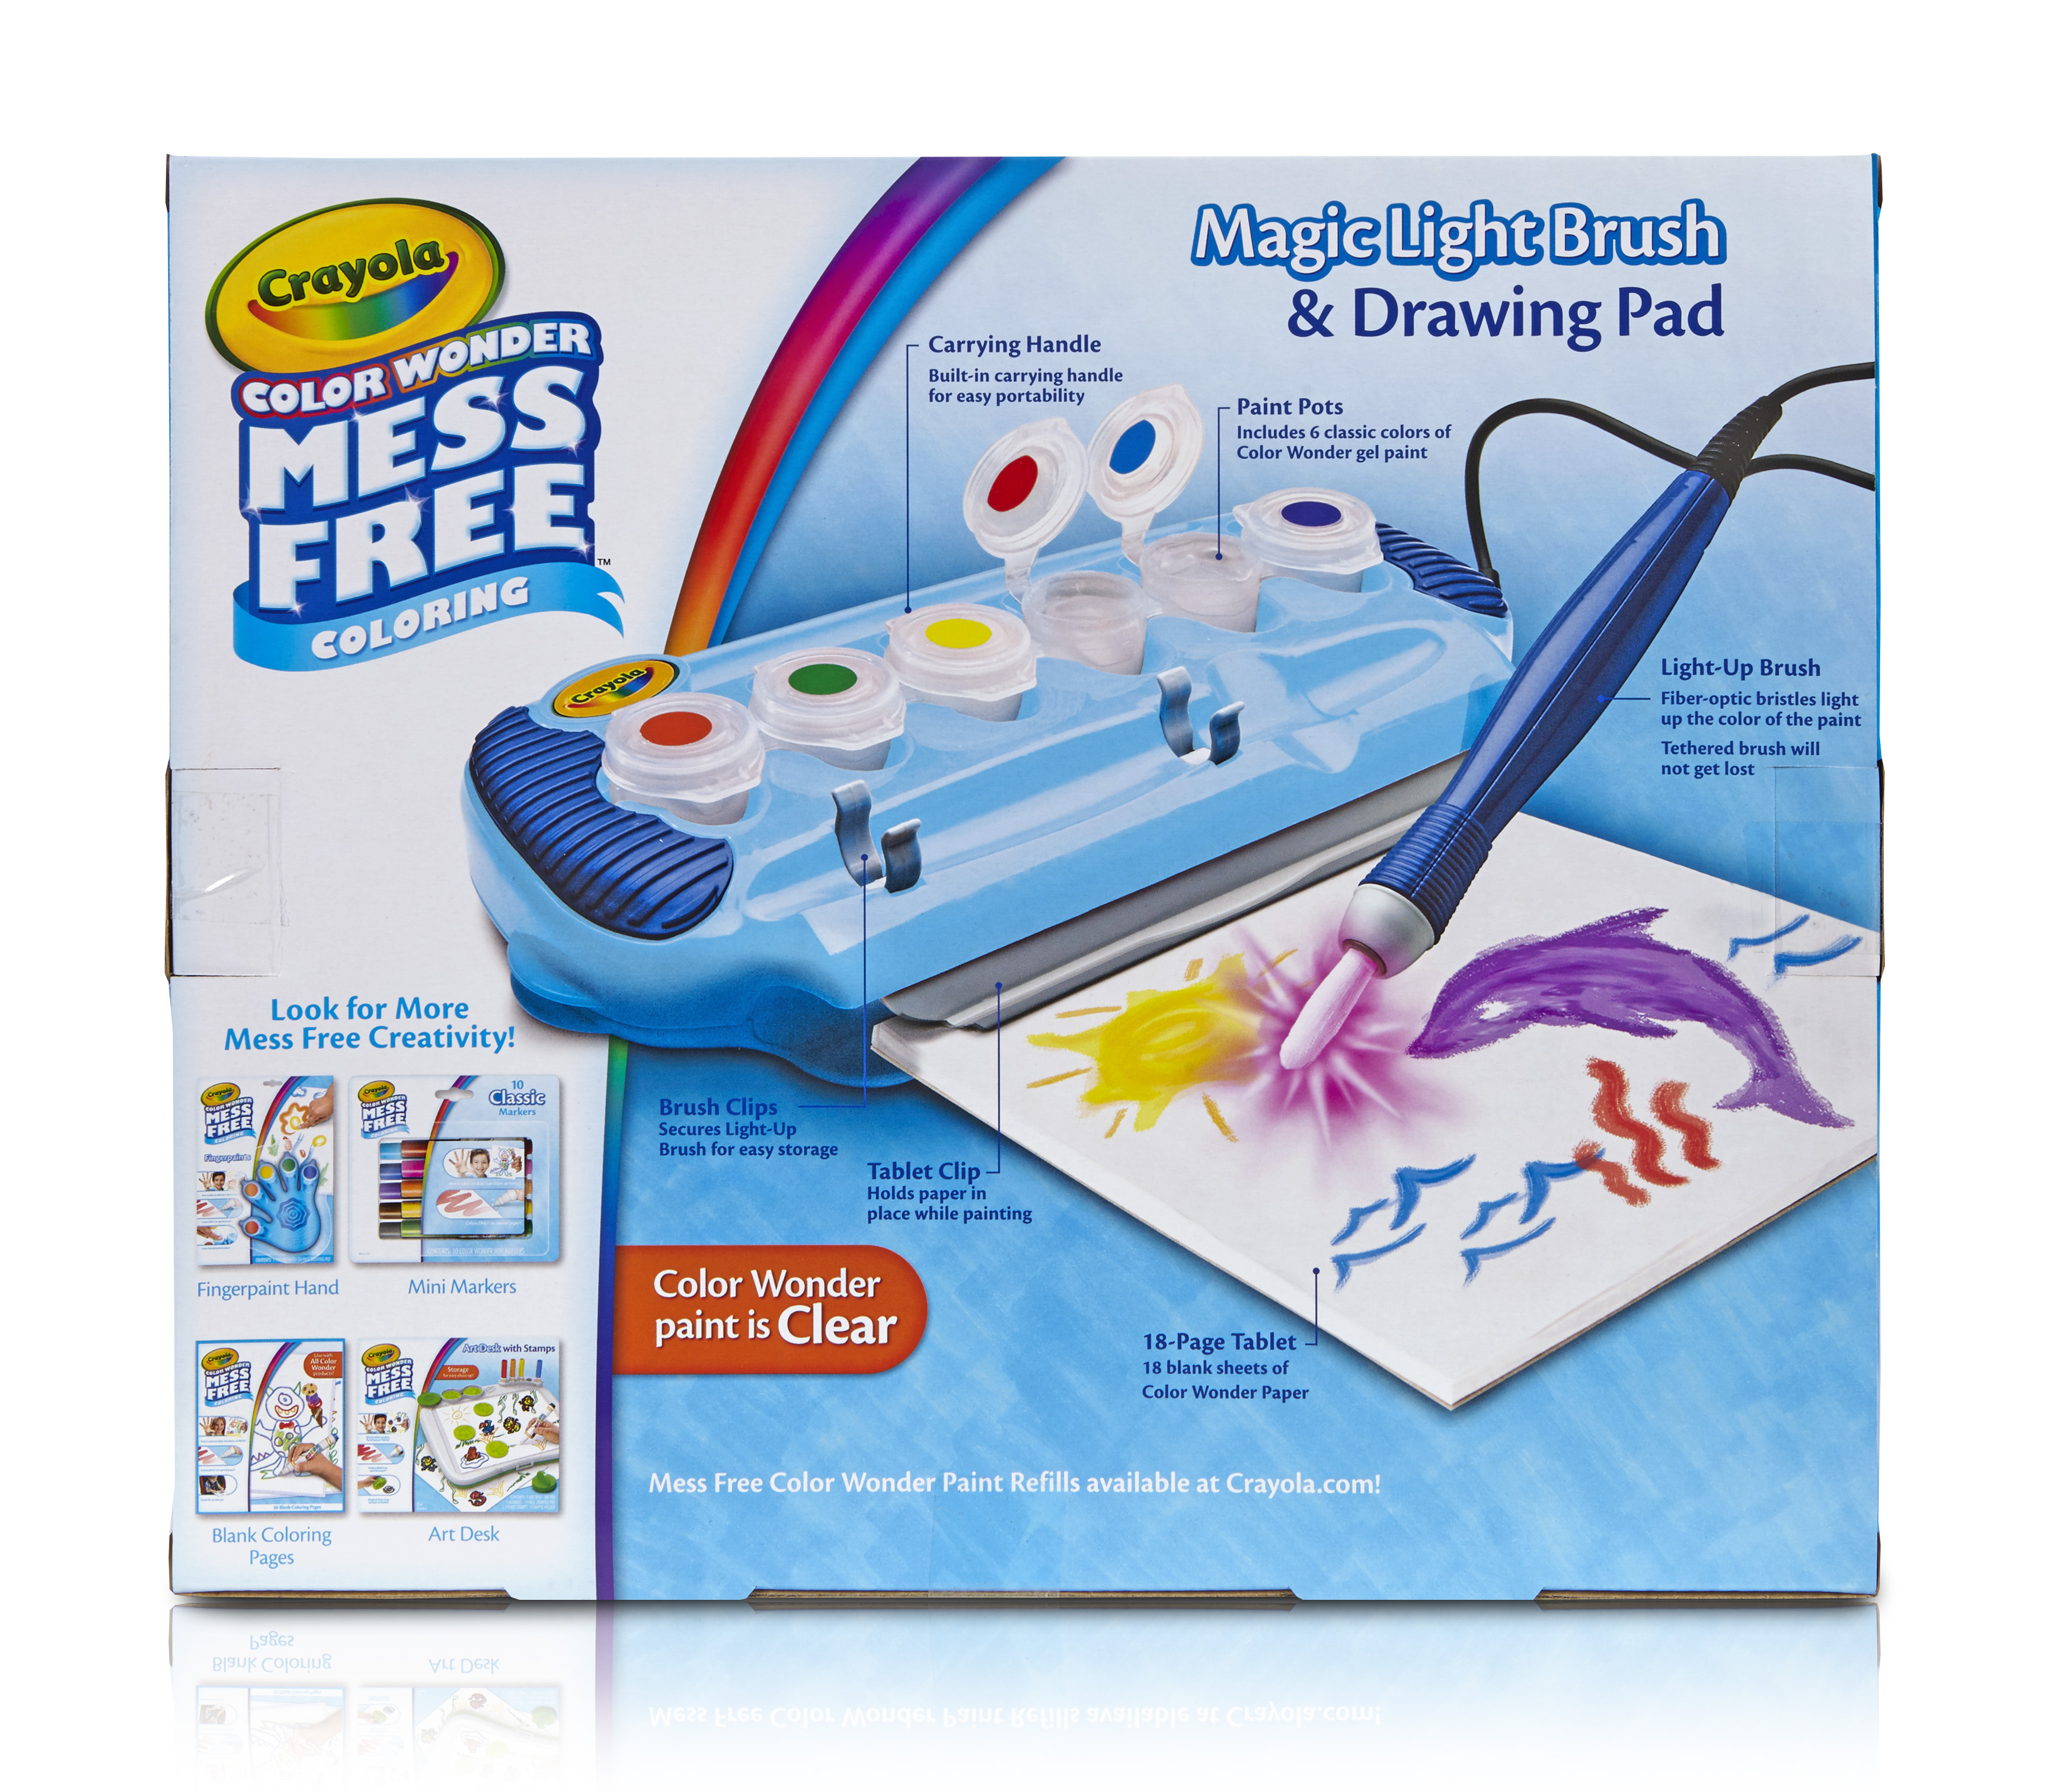 Crayola Color Wonder Magic Light Brush & Drawing Pad, Mess Free Painting, Gift by Crayola